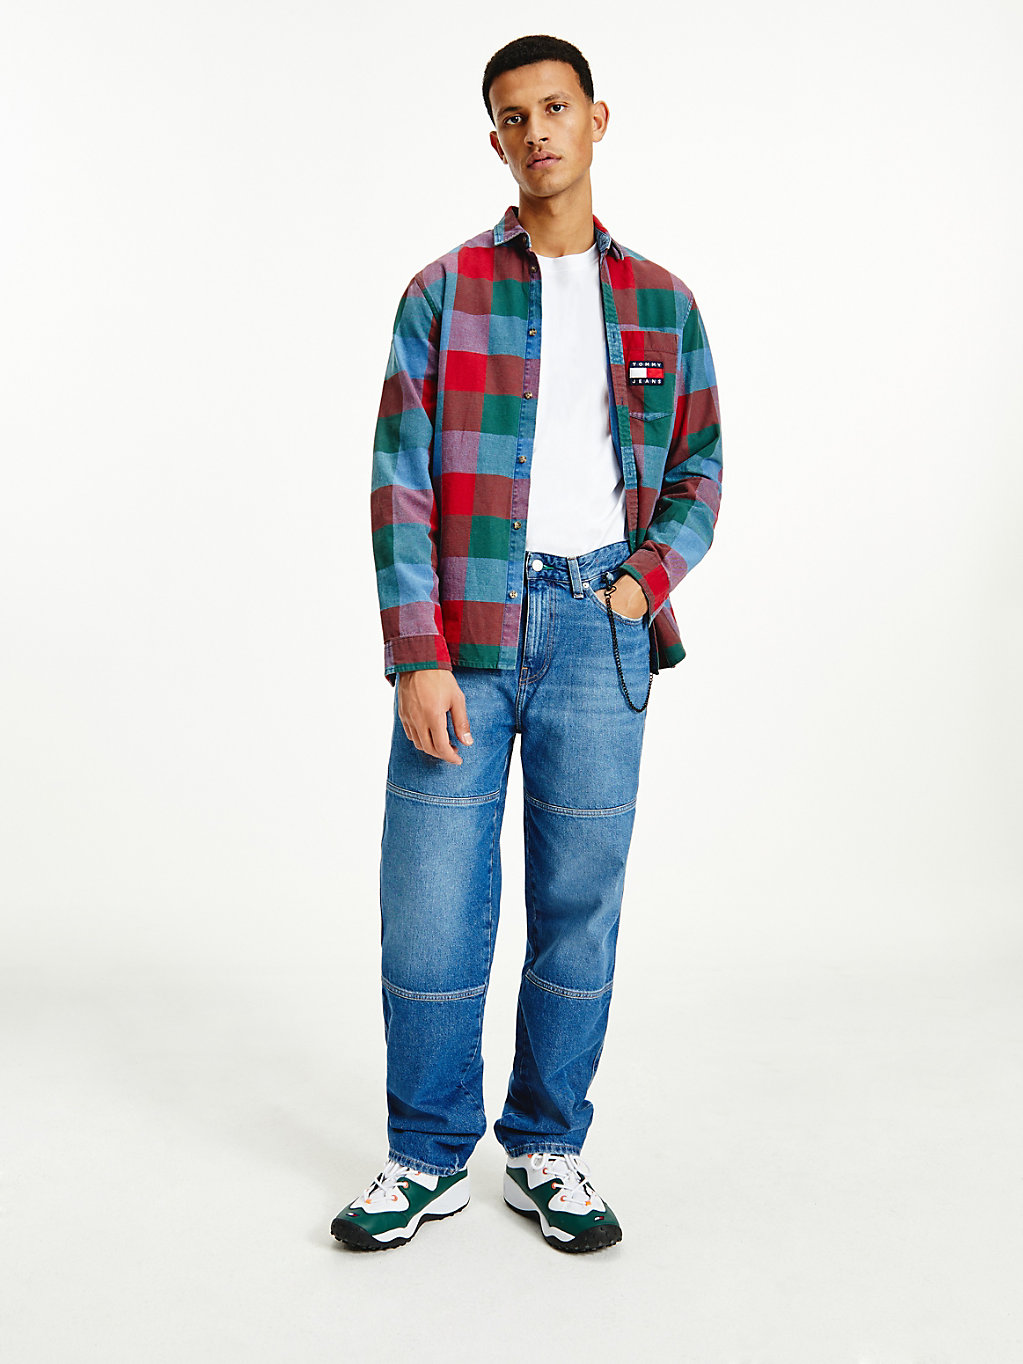 TOMMY JEANS  - TJ SAVE FA LIGHT BLUE RIG -   - main image